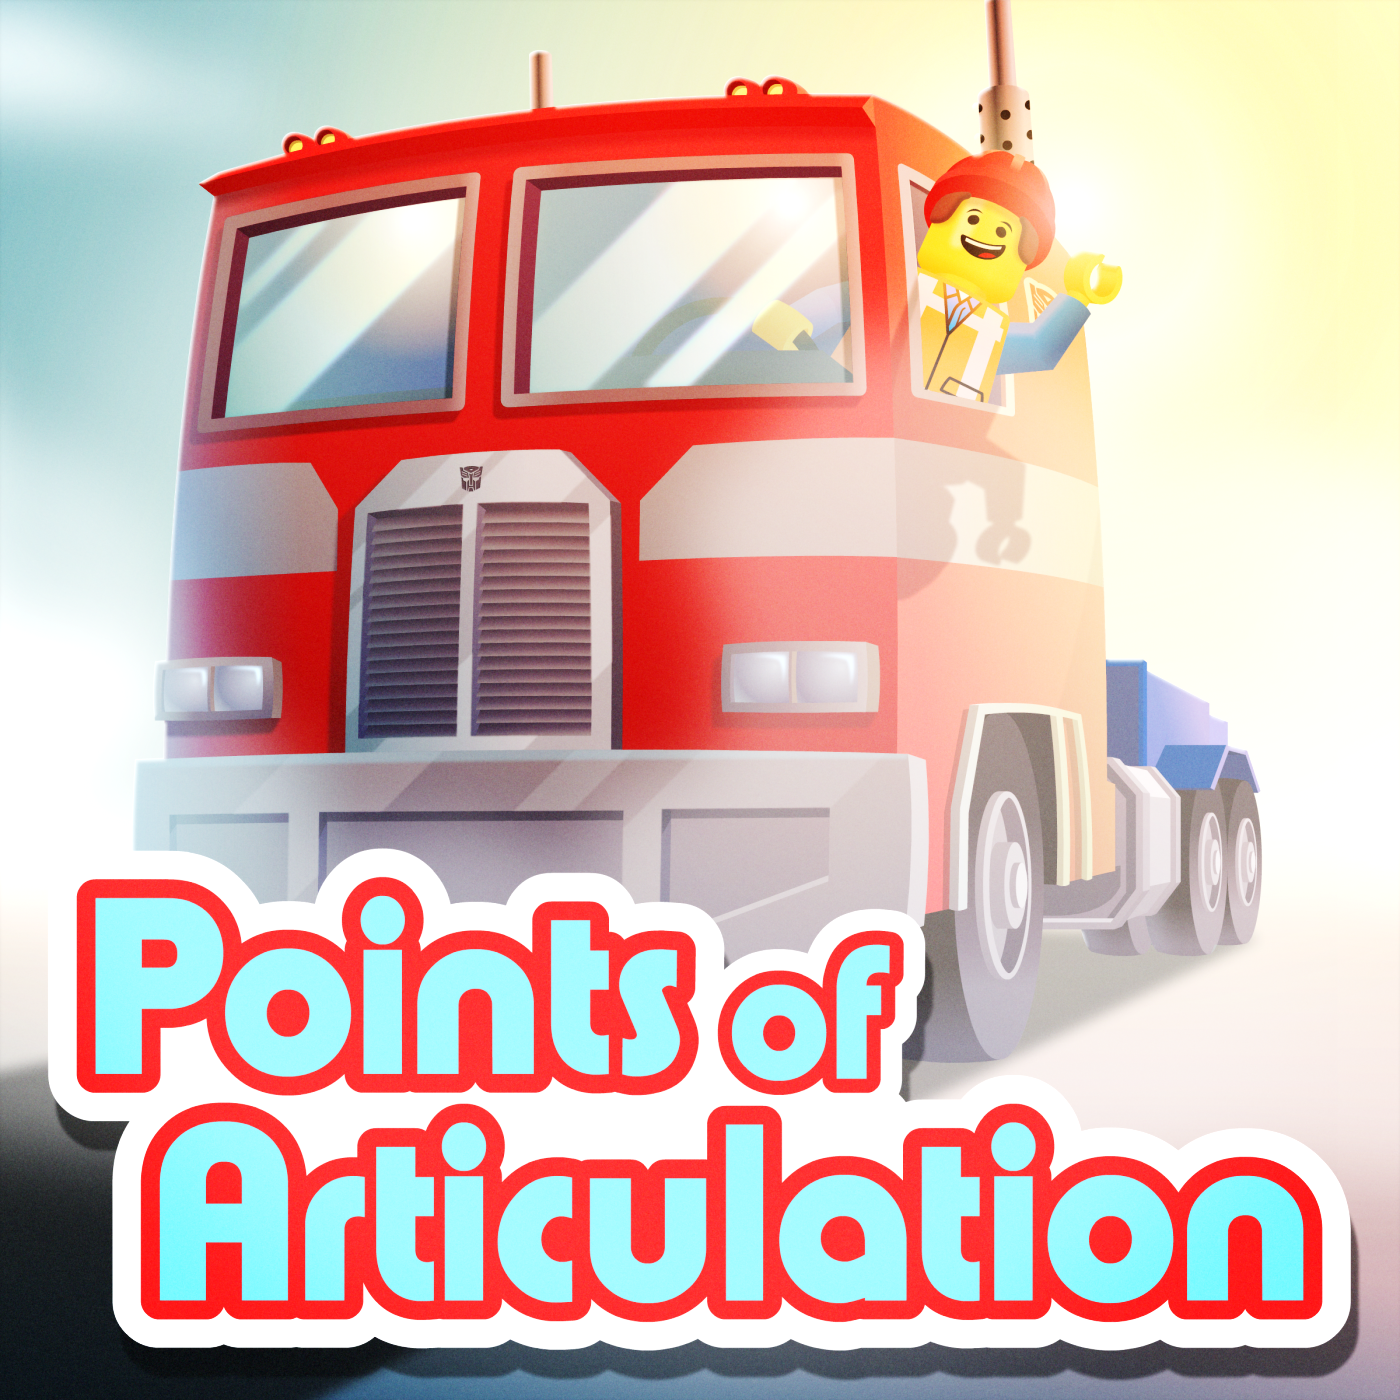 Points of Articulation